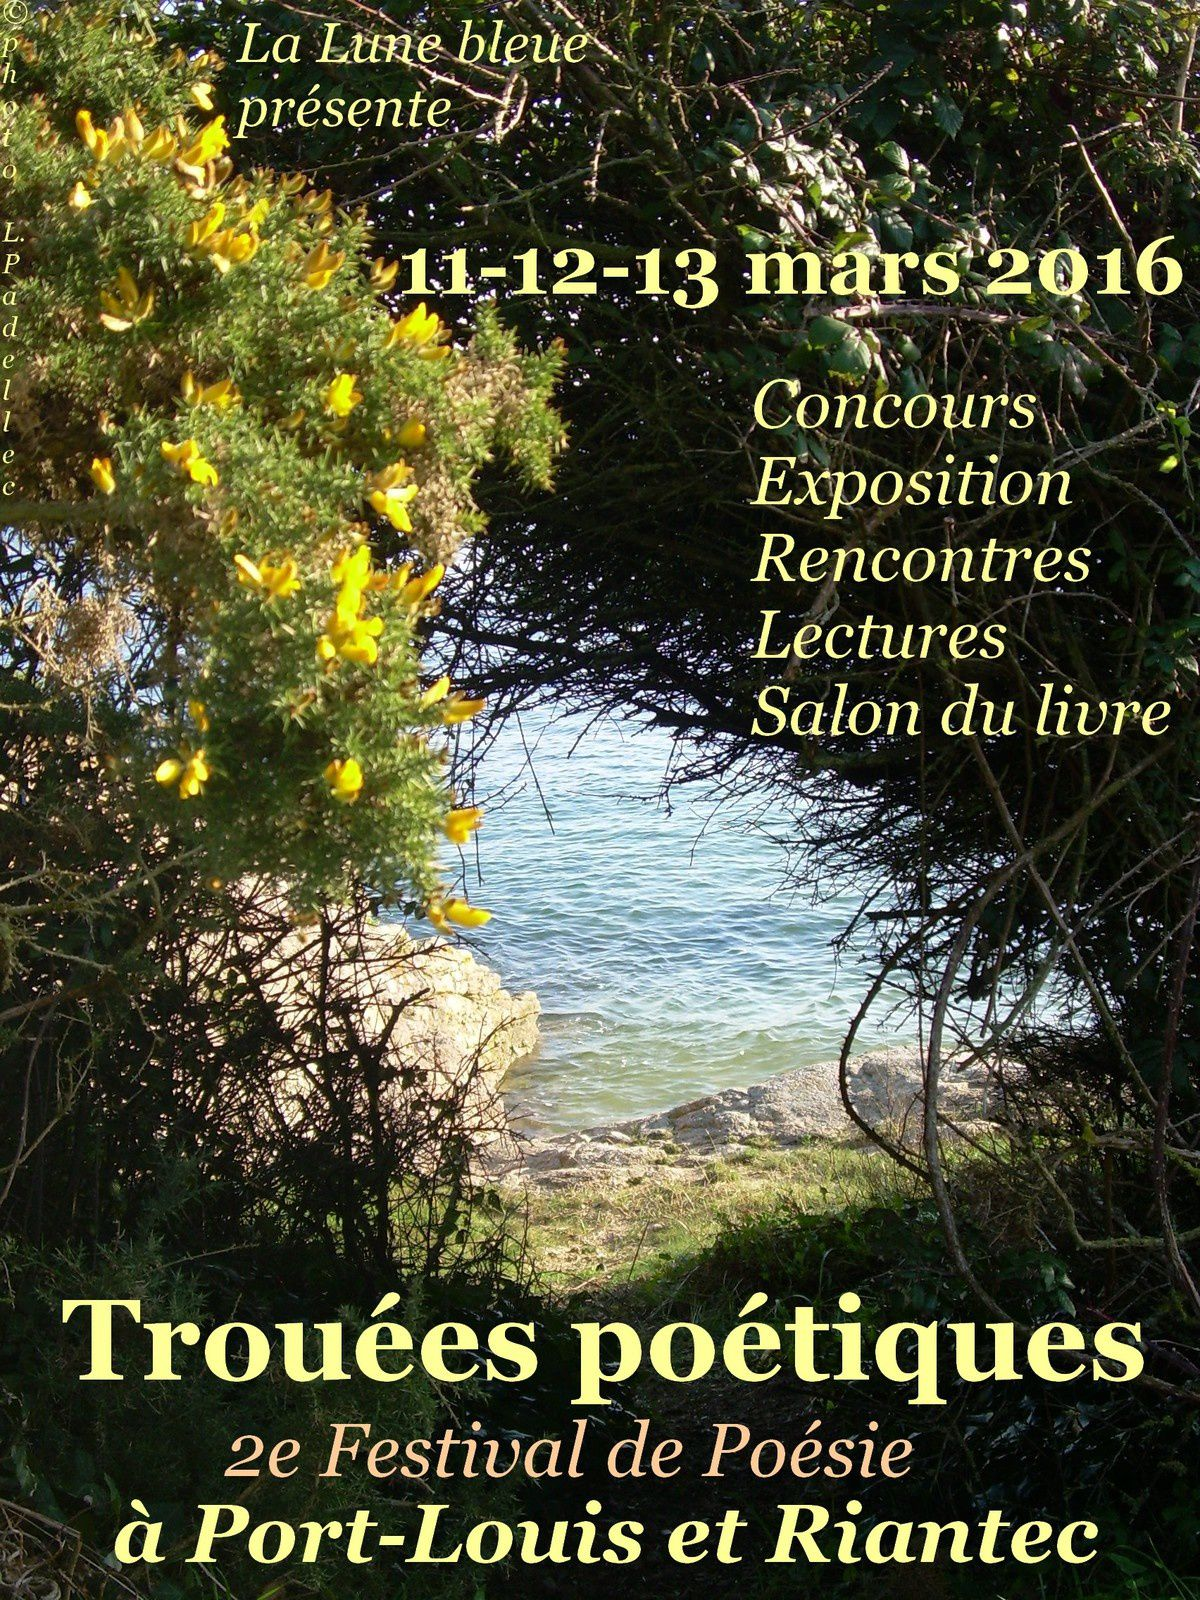 1- affiche 2016 / 2 et 3- marché Port-Louis 2015 (photos L.P. ?)